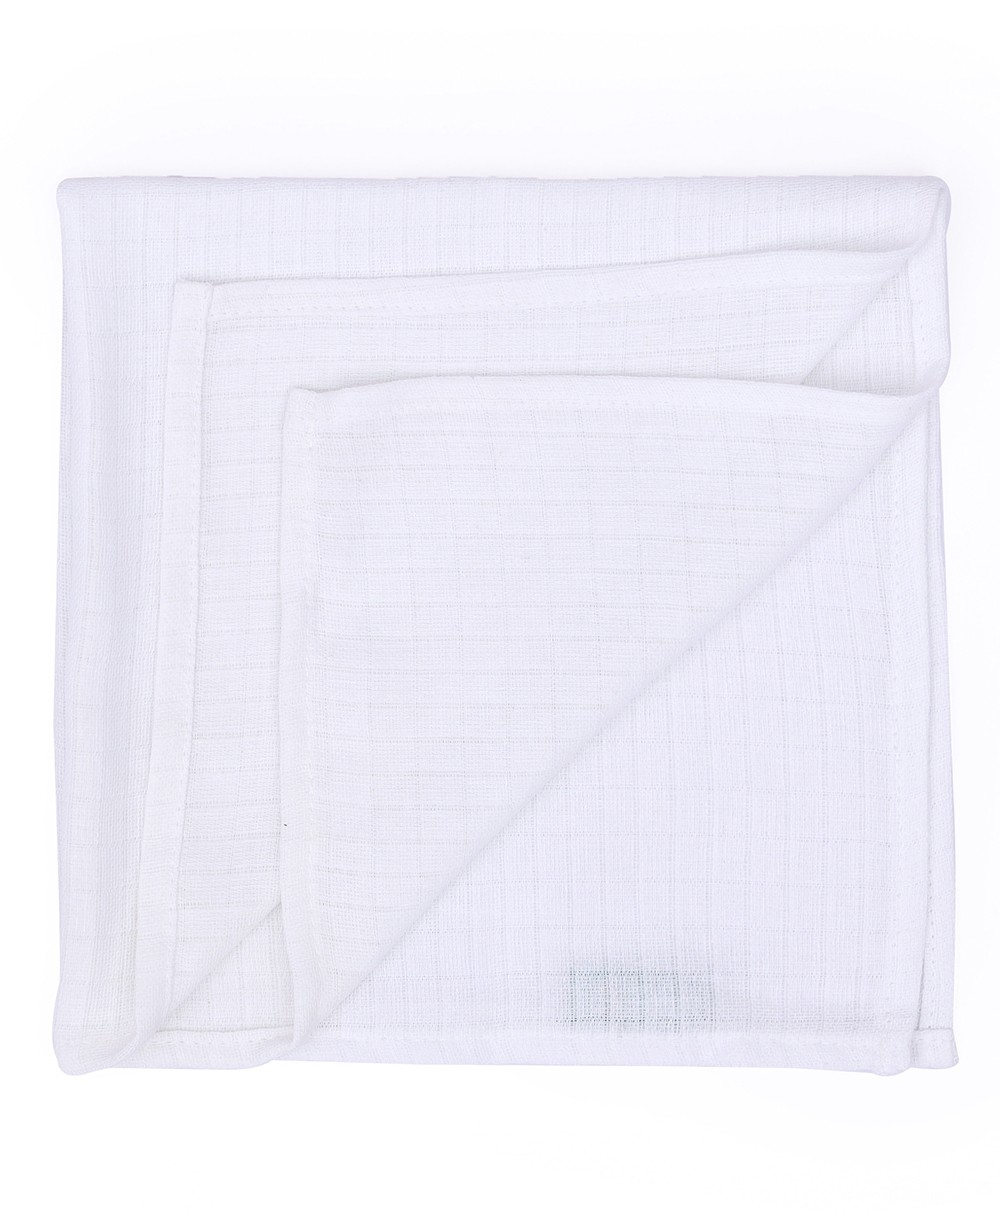 Care Muslin Squares - Arcus (Pack of 10)